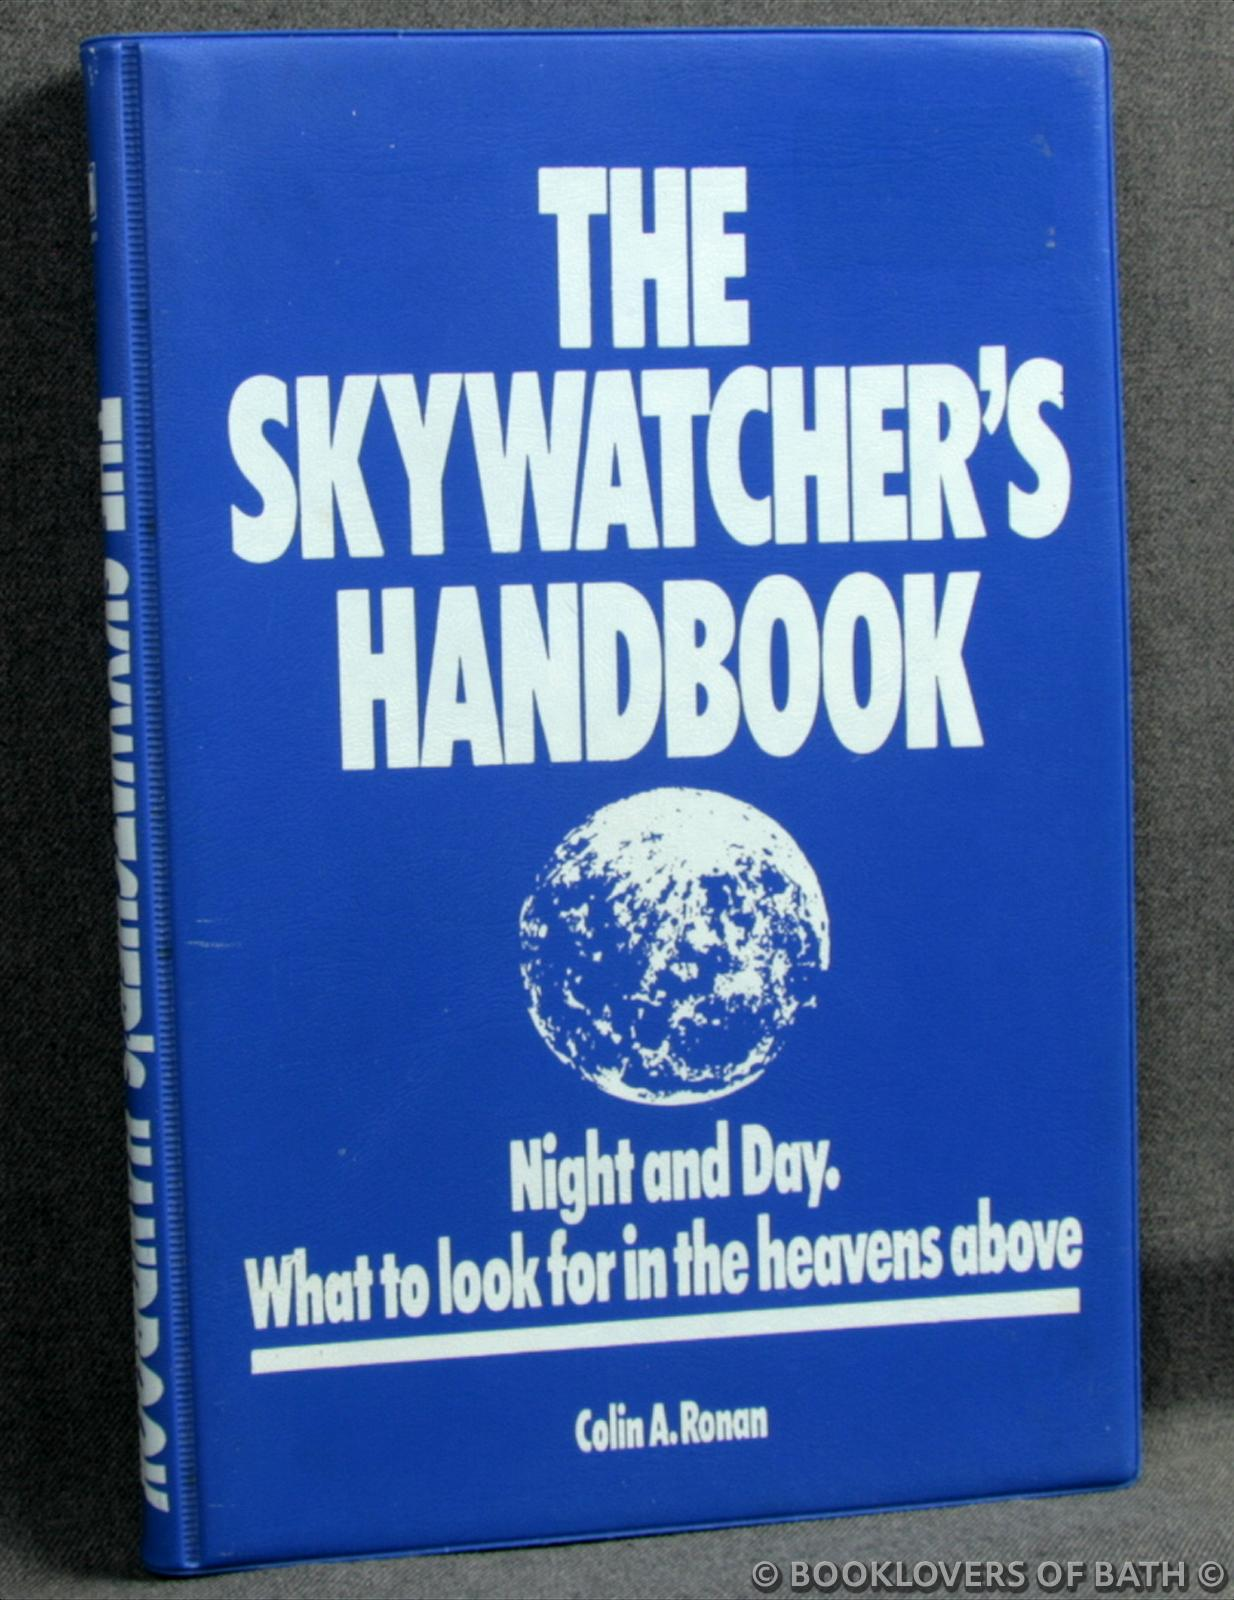 The Skywatcher's Handbook - Colin A. [Alastair] Ronan